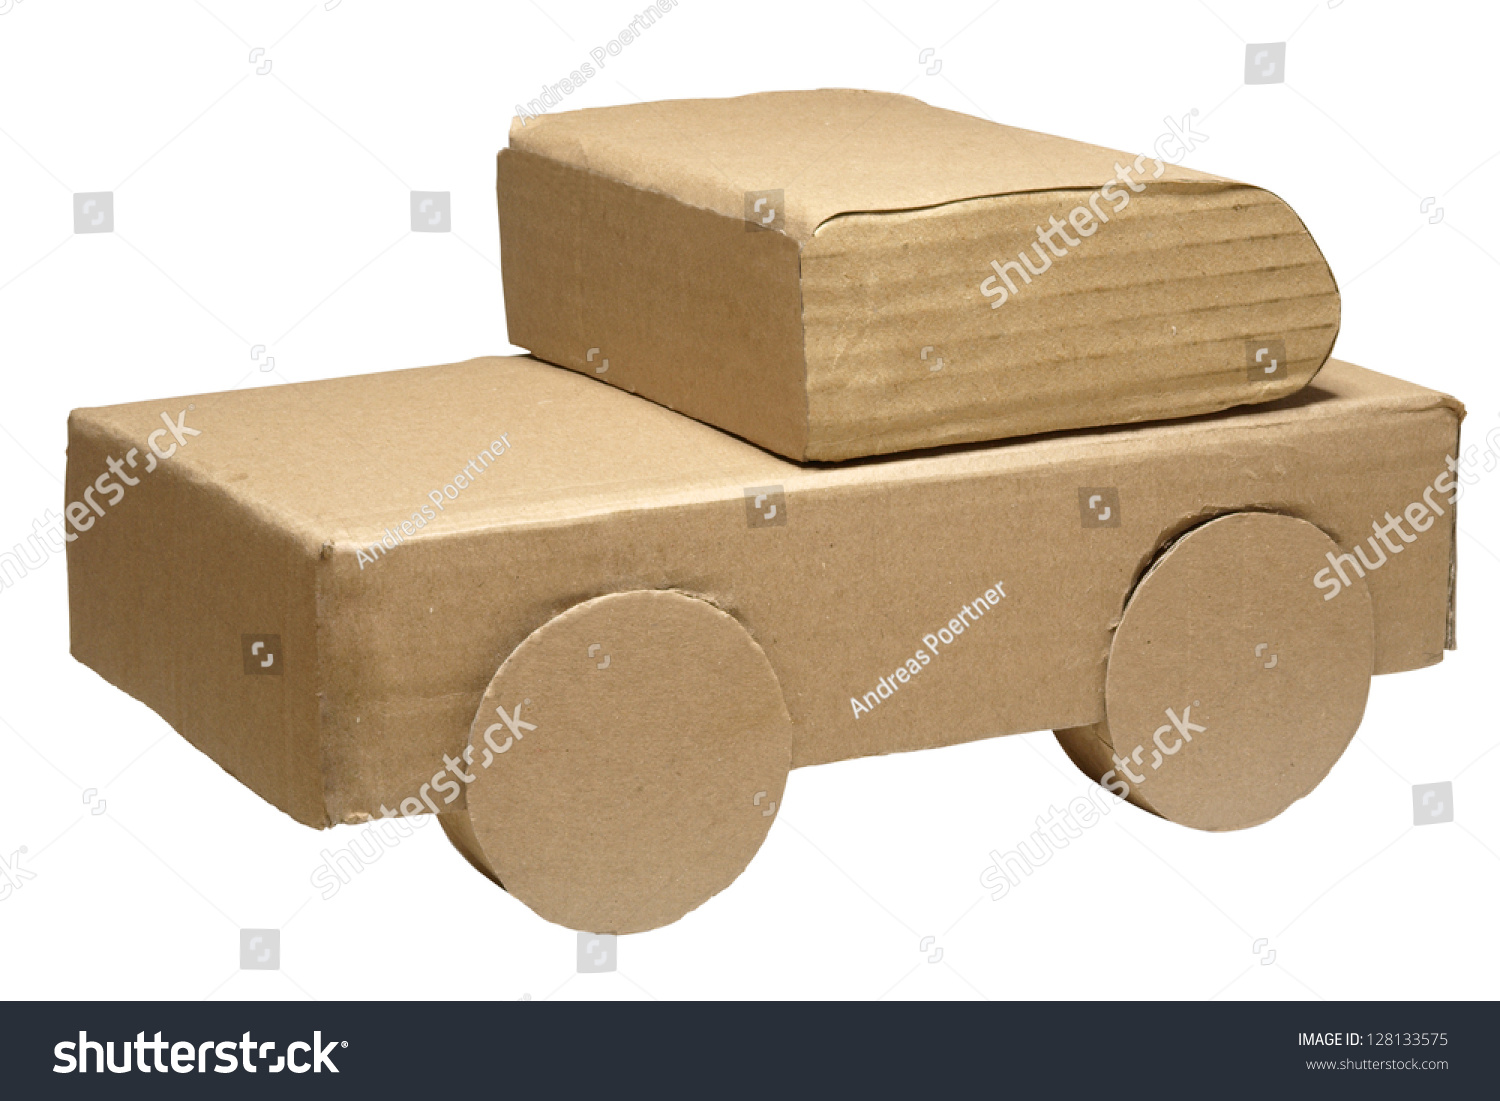 handmade insurance handmade car model concept car stock photo 6295